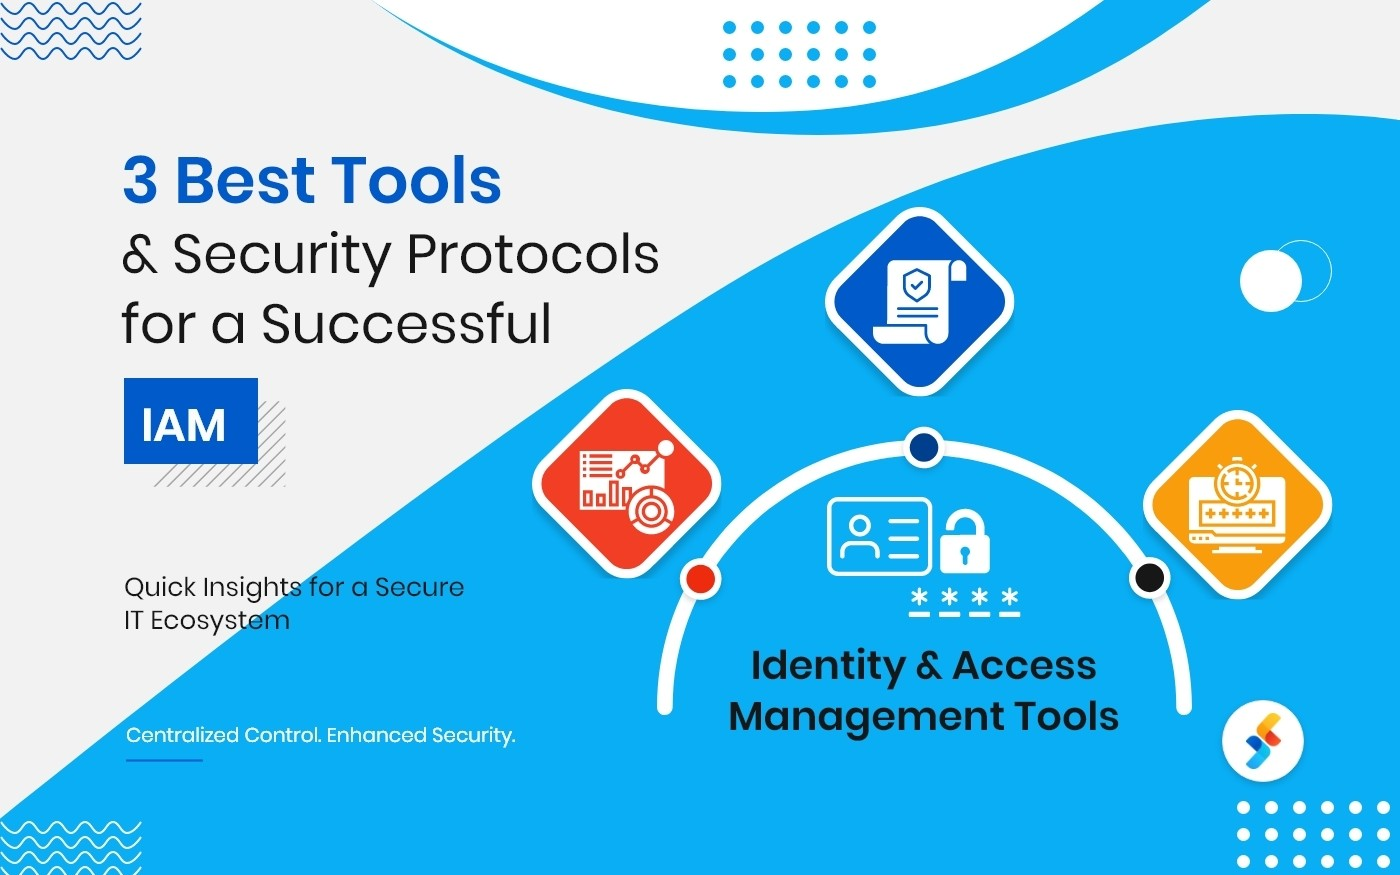 3 Best Tools and Security Protocols for a Successful IAM